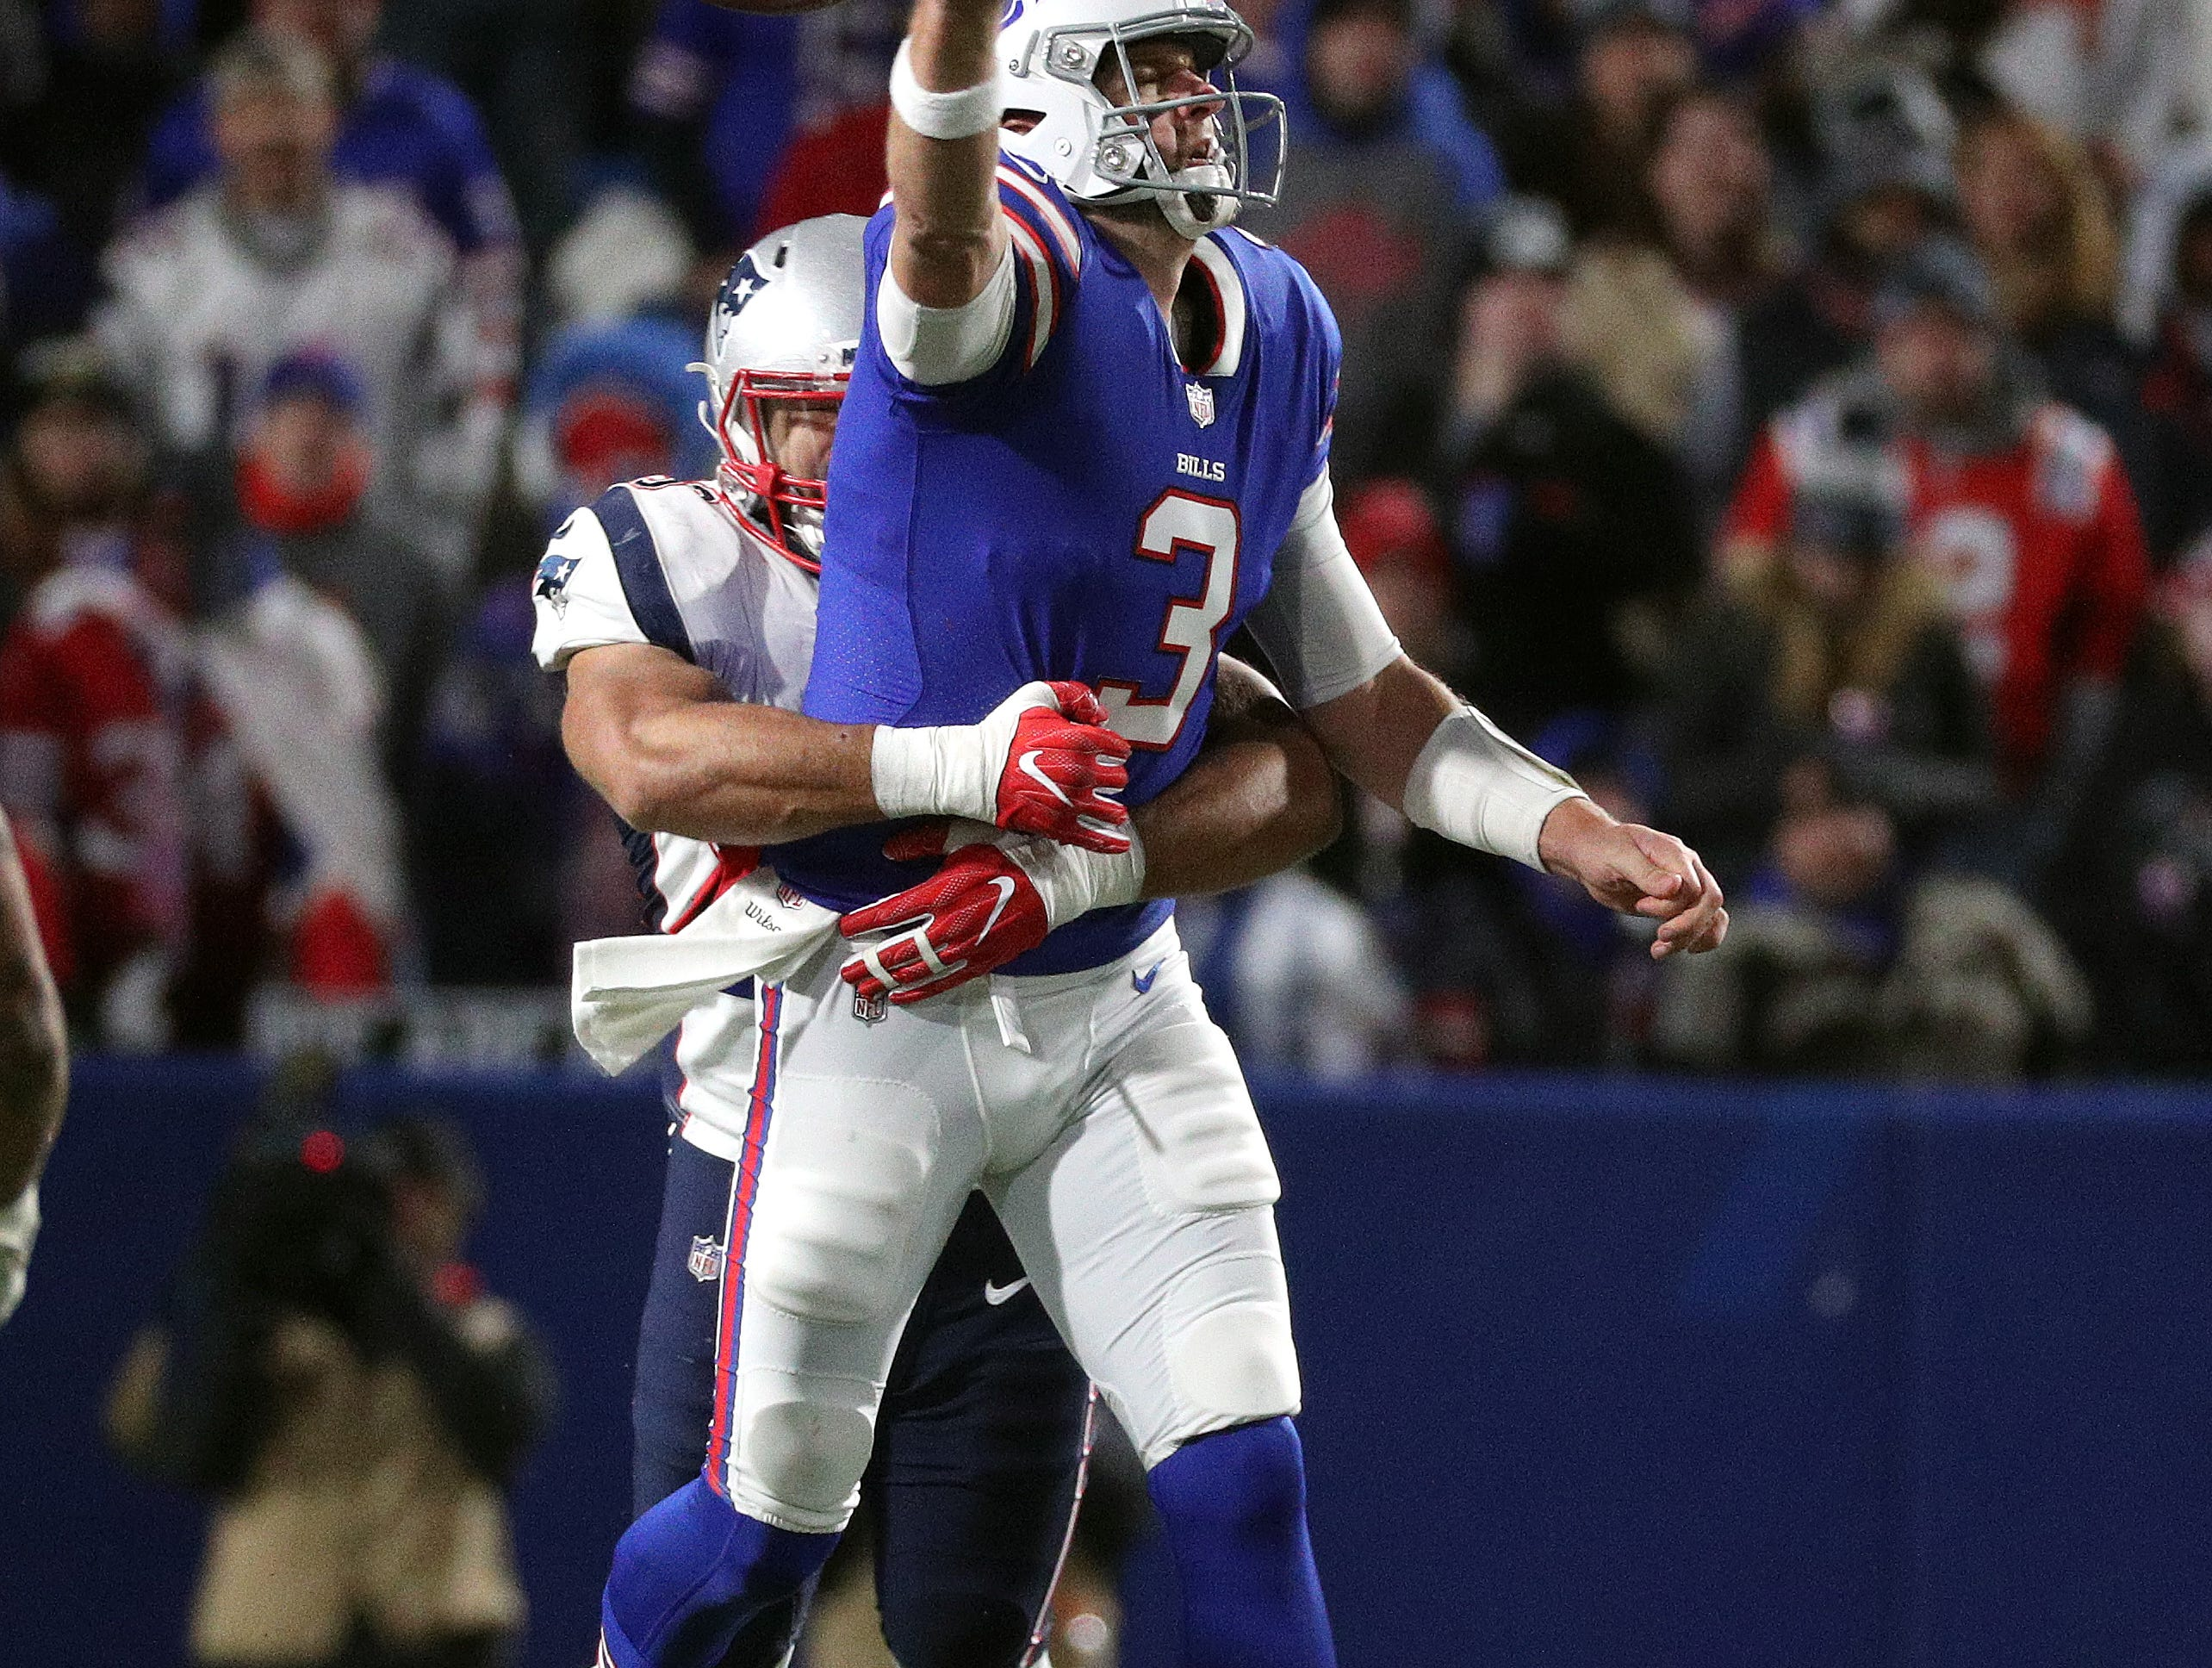 Bills quarterback Derek Anderson is sacked and loses this fumble by Patriots Kyle Van Noy.